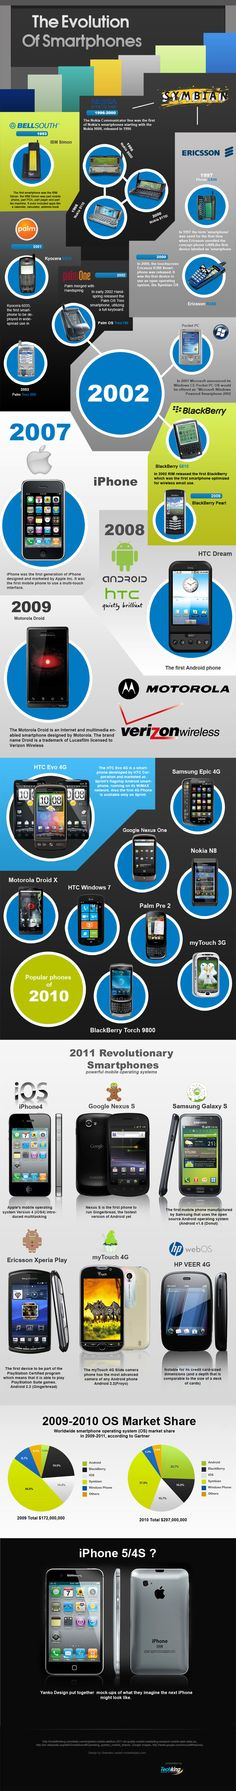 Have you ever wanted a bird's eye view of the smartphone industry? Wouldn't it be cool to look back at the evolution of handsets from the until now? TechKing has put together an awesome infographic that demonstrates how smartphone. Mobile Marketing, Marketing Digital, Online Marketing, Social Media Marketing, Mobile Smartphone, Mobile Phones, Evolution, Mobile Technology, Latest Technology